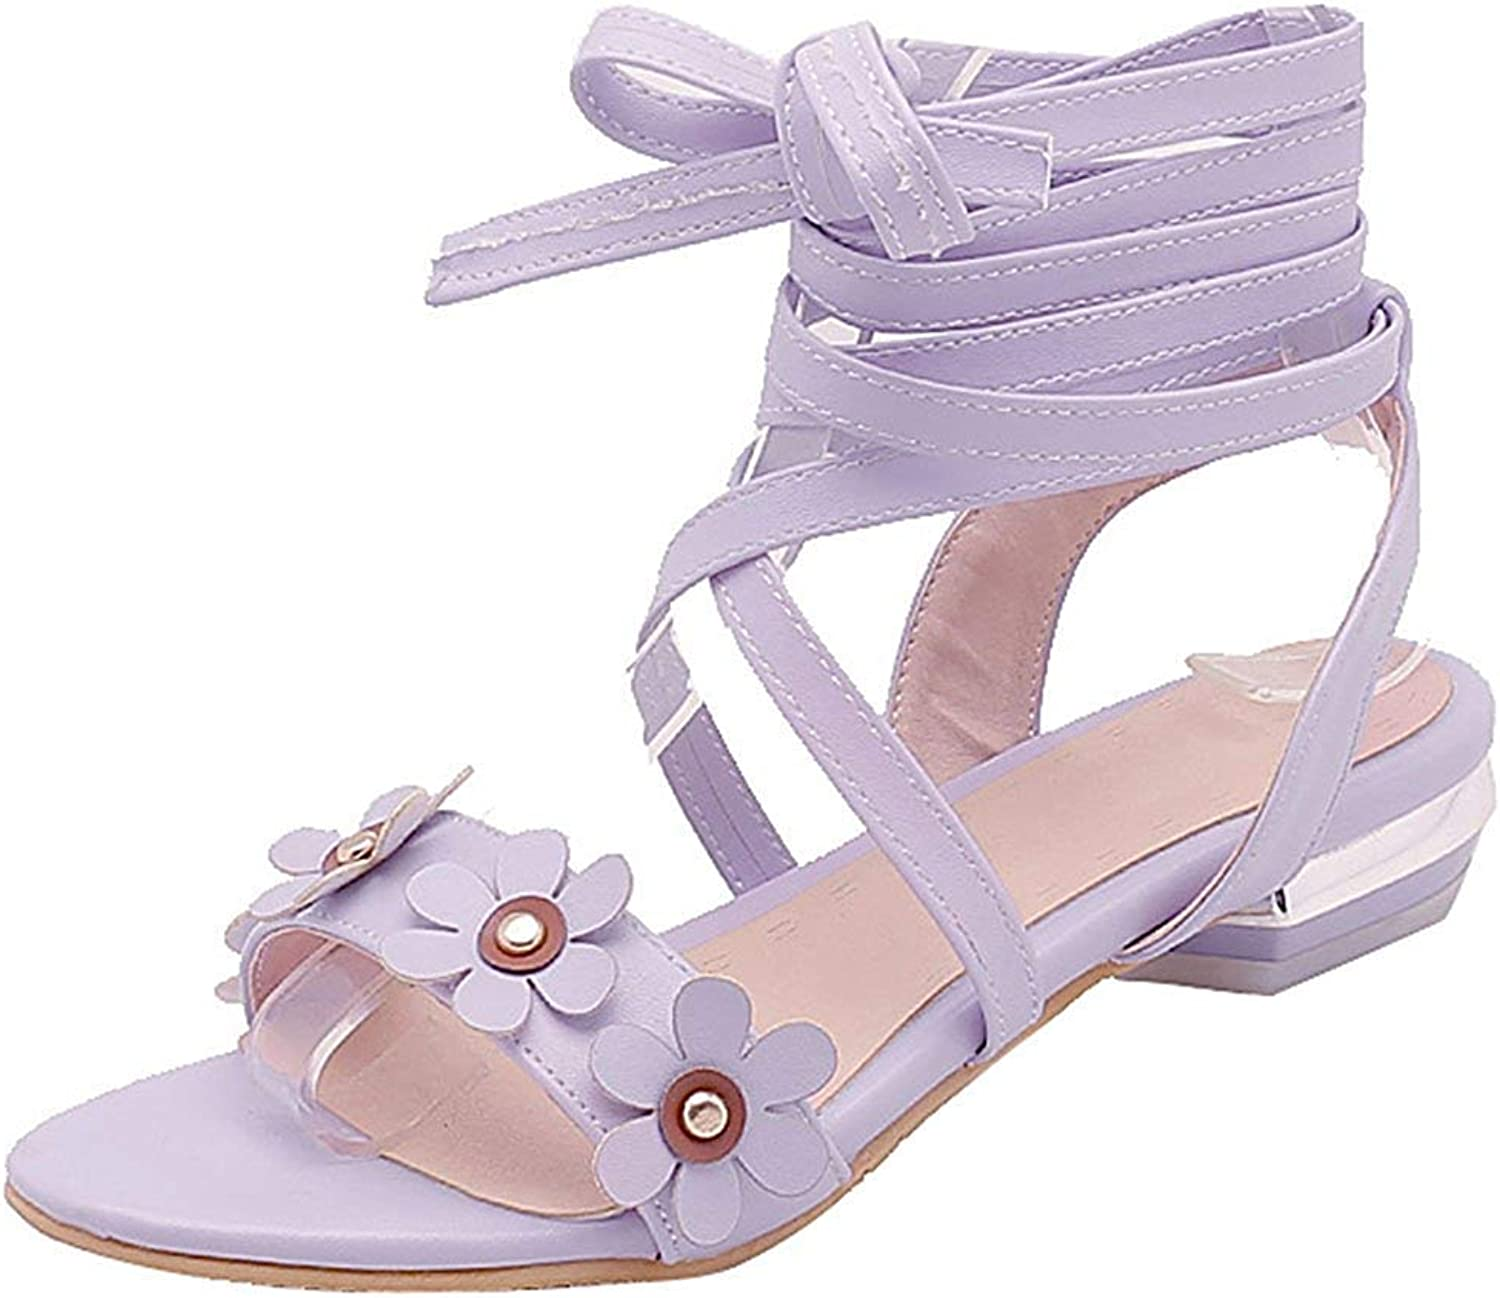 Wallhewb Women's Sweet Studded Flowers Sandals - Open Toe Solid color Strappy - Self Tie Block Low Heel Gladiators shoes No Grinding Feet Breathable Comfortable Leather Short White 8 M US Sandals